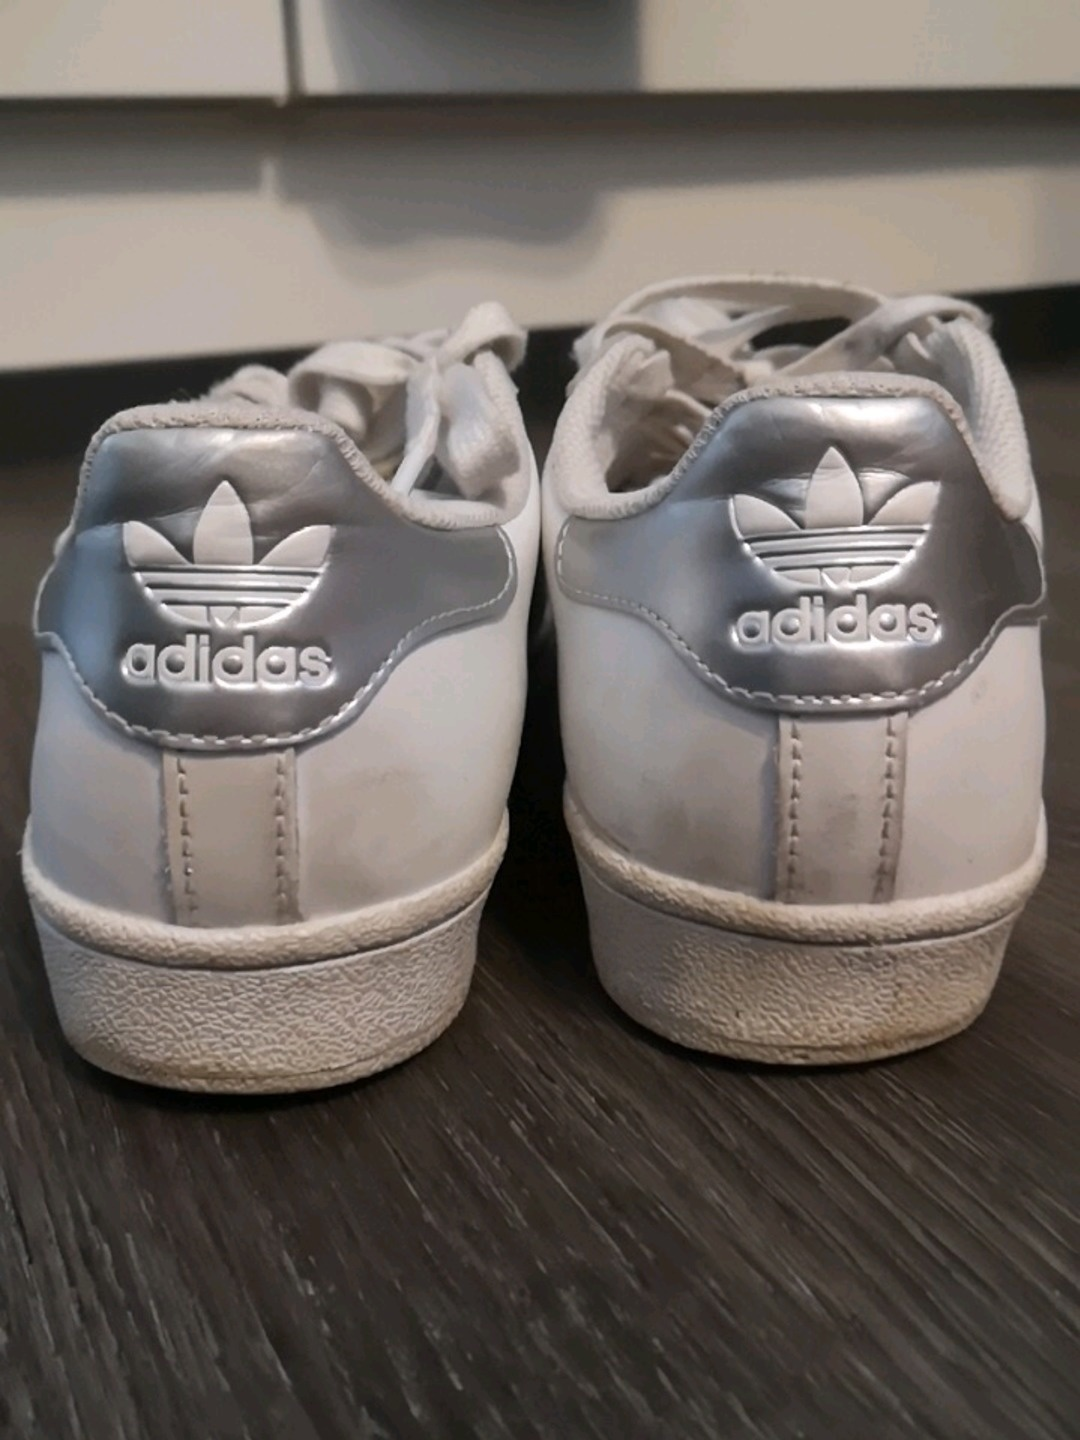 Damers sneakers - ADIDAS photo 2